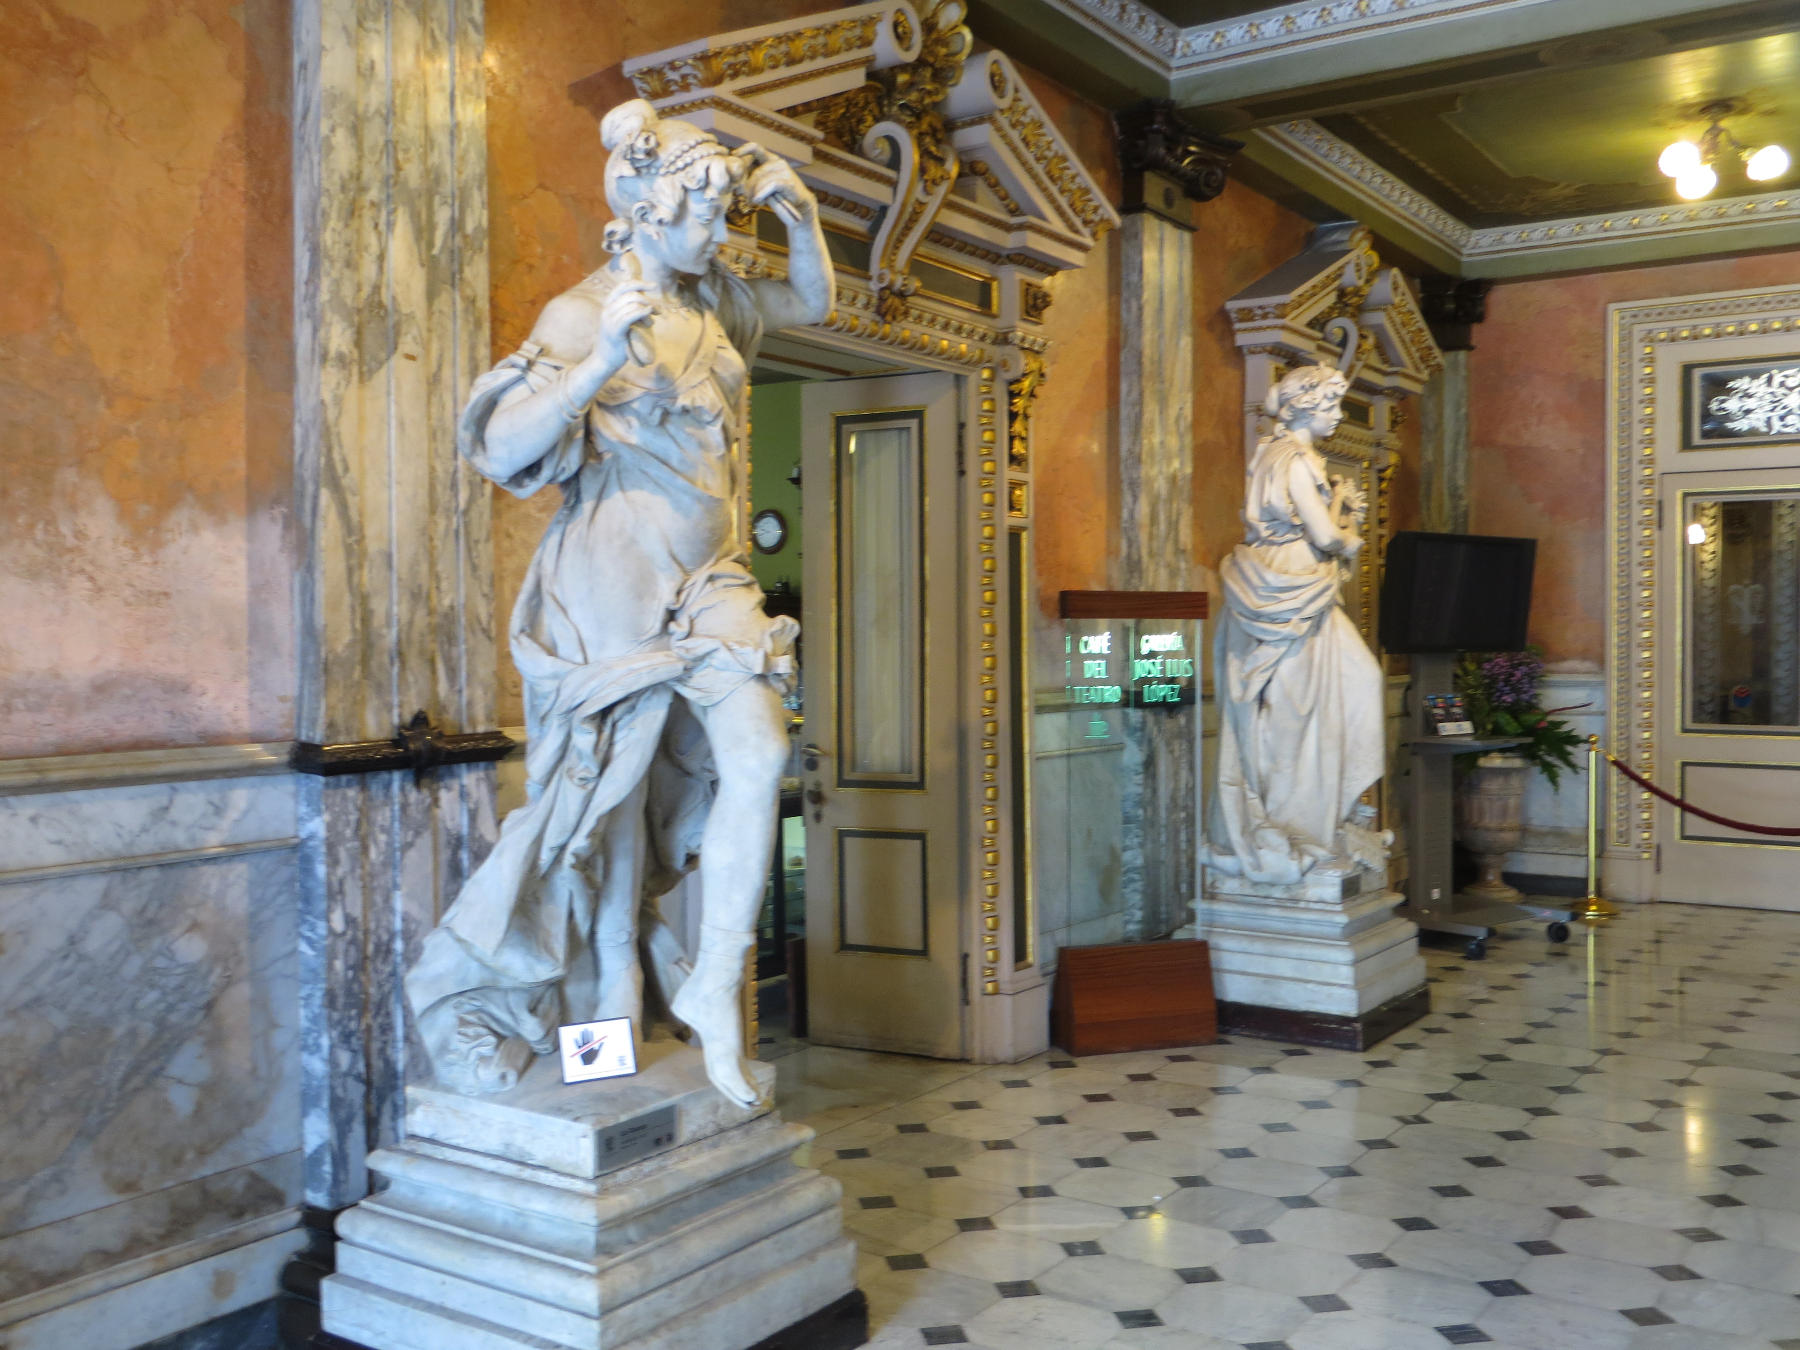 Statues by Italian and Costa Rican artists adorn the lobby of the National Theater.